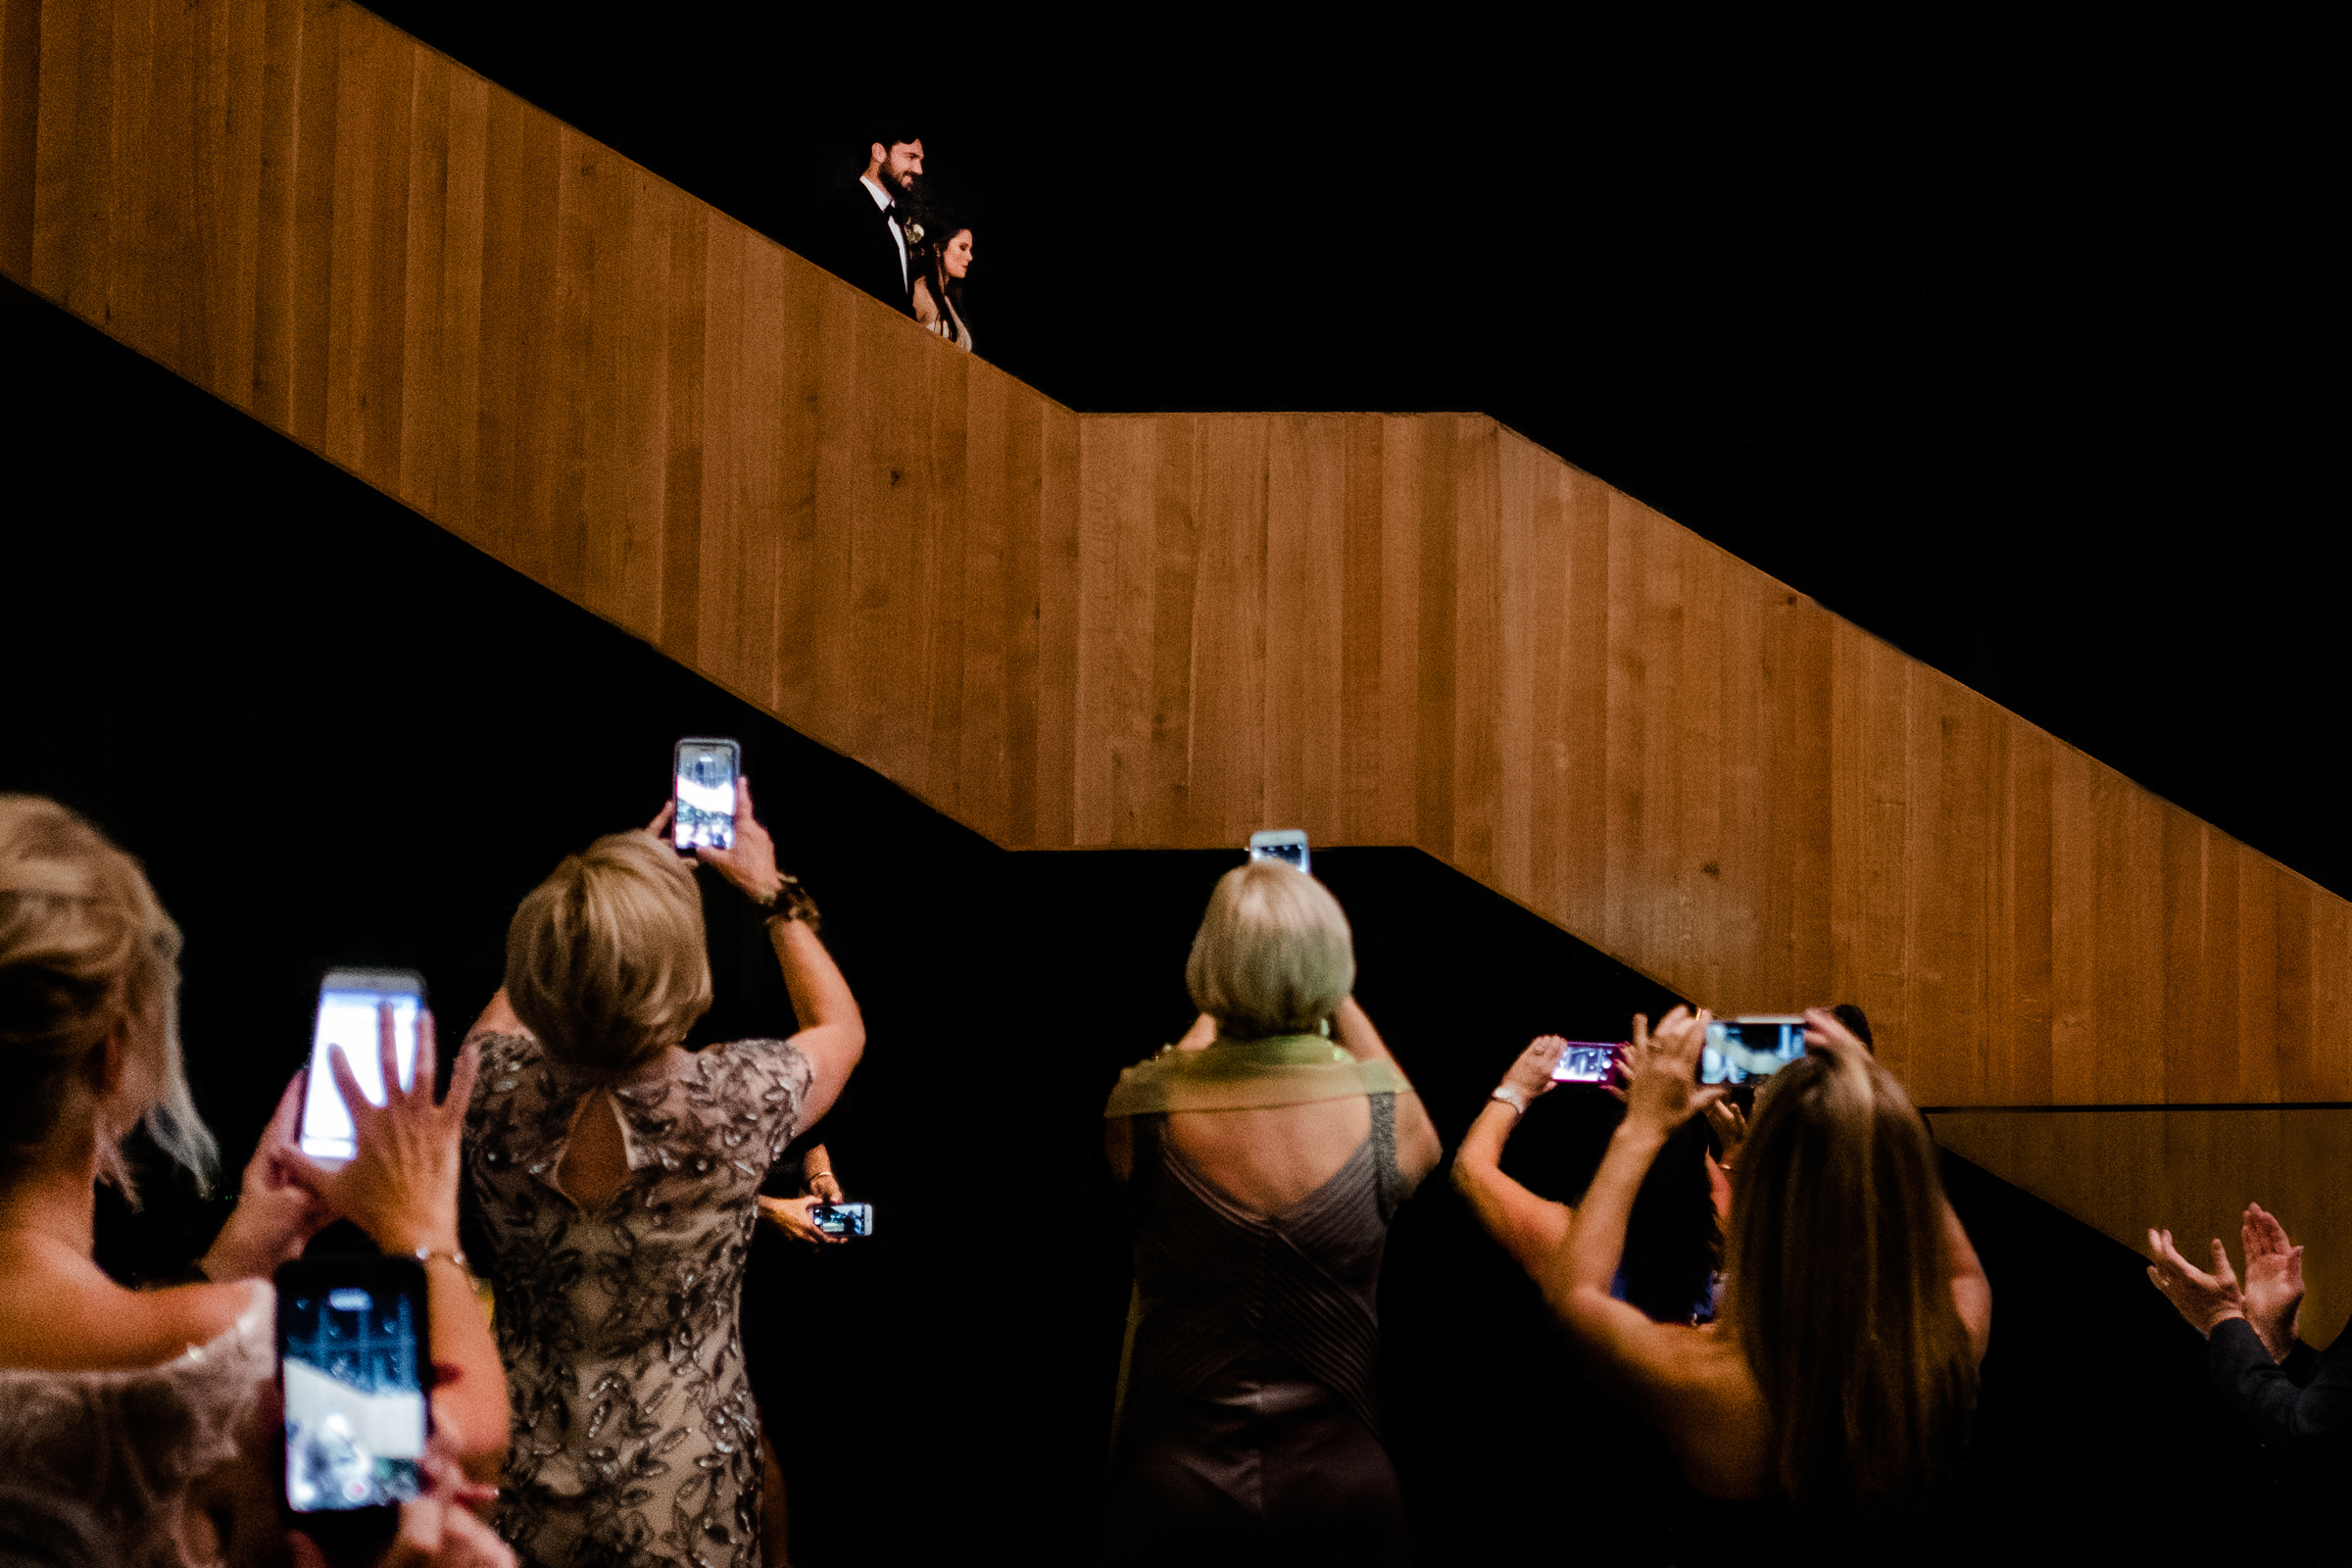 Guests shooting phone photos of couple descending stairs - photo by Vinson Images